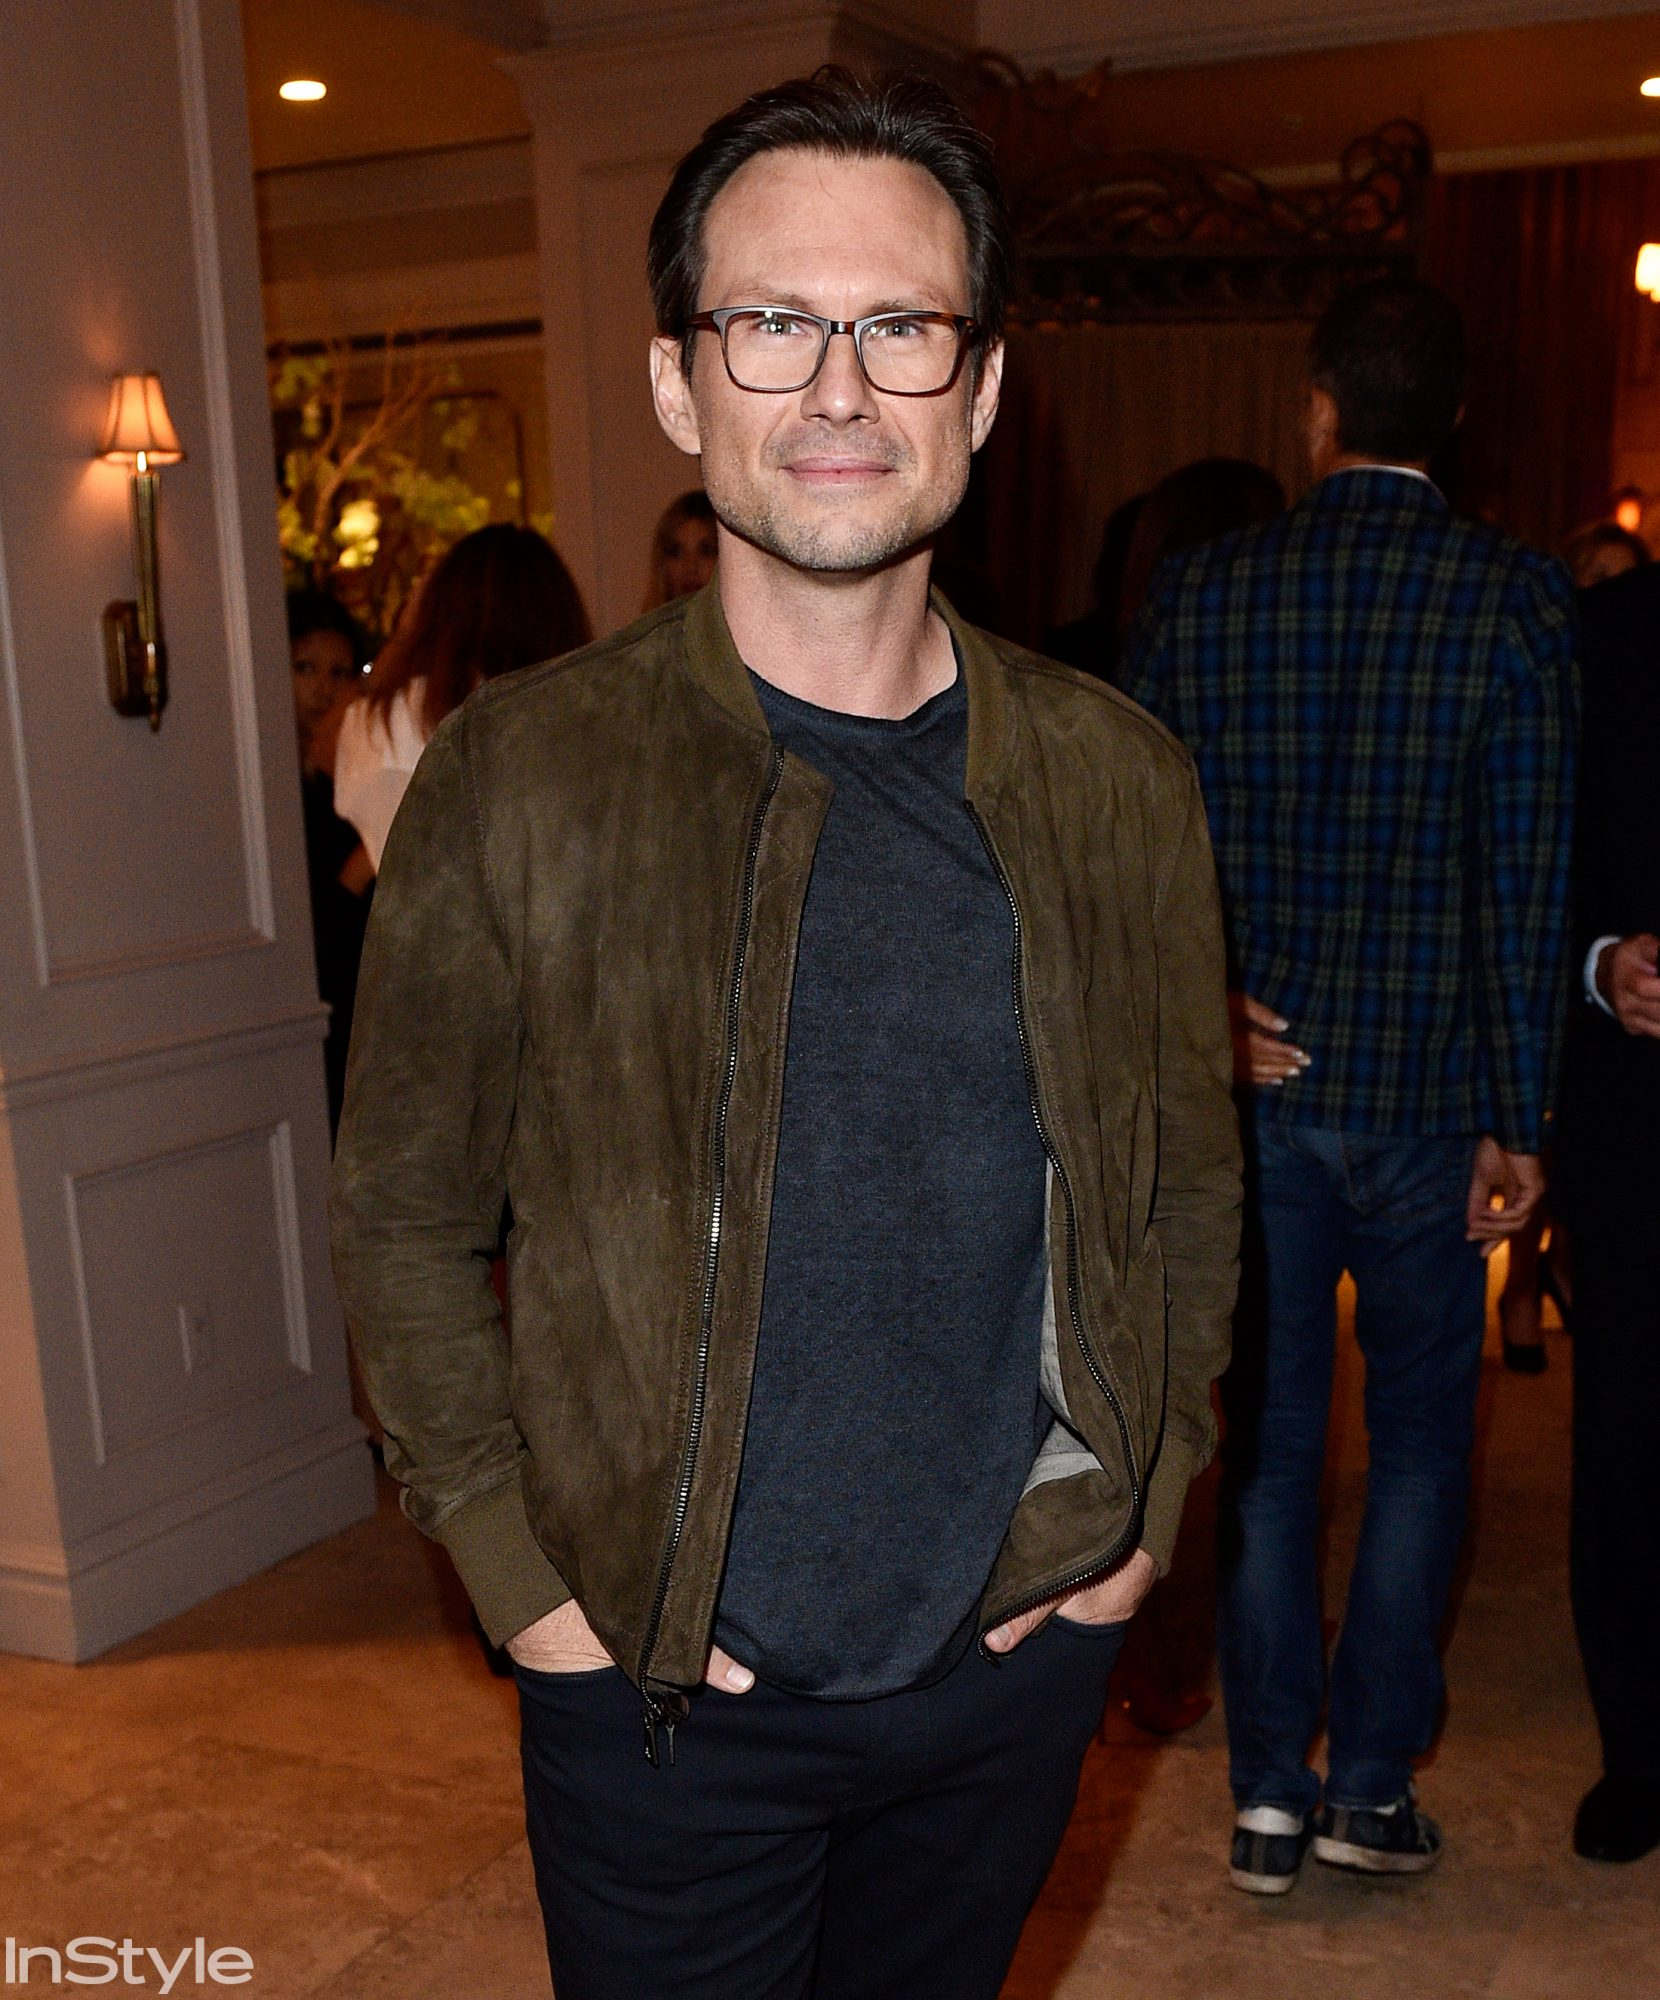 TIFF InStyle Party - Christian Slater